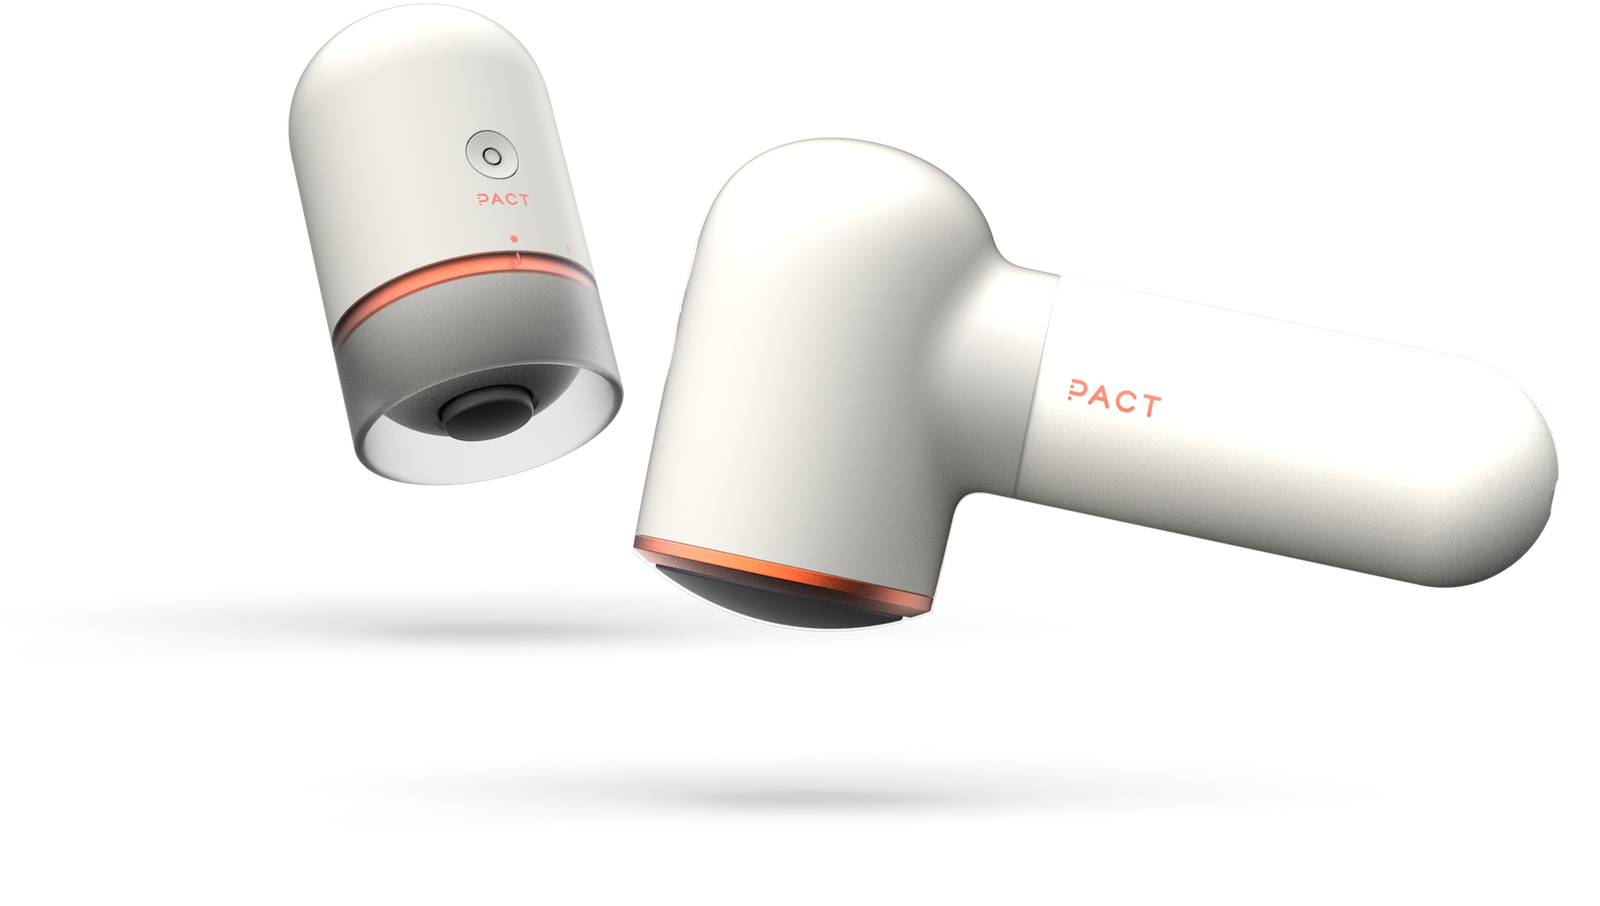 PACT. The world's first full-feedback connectedmassager